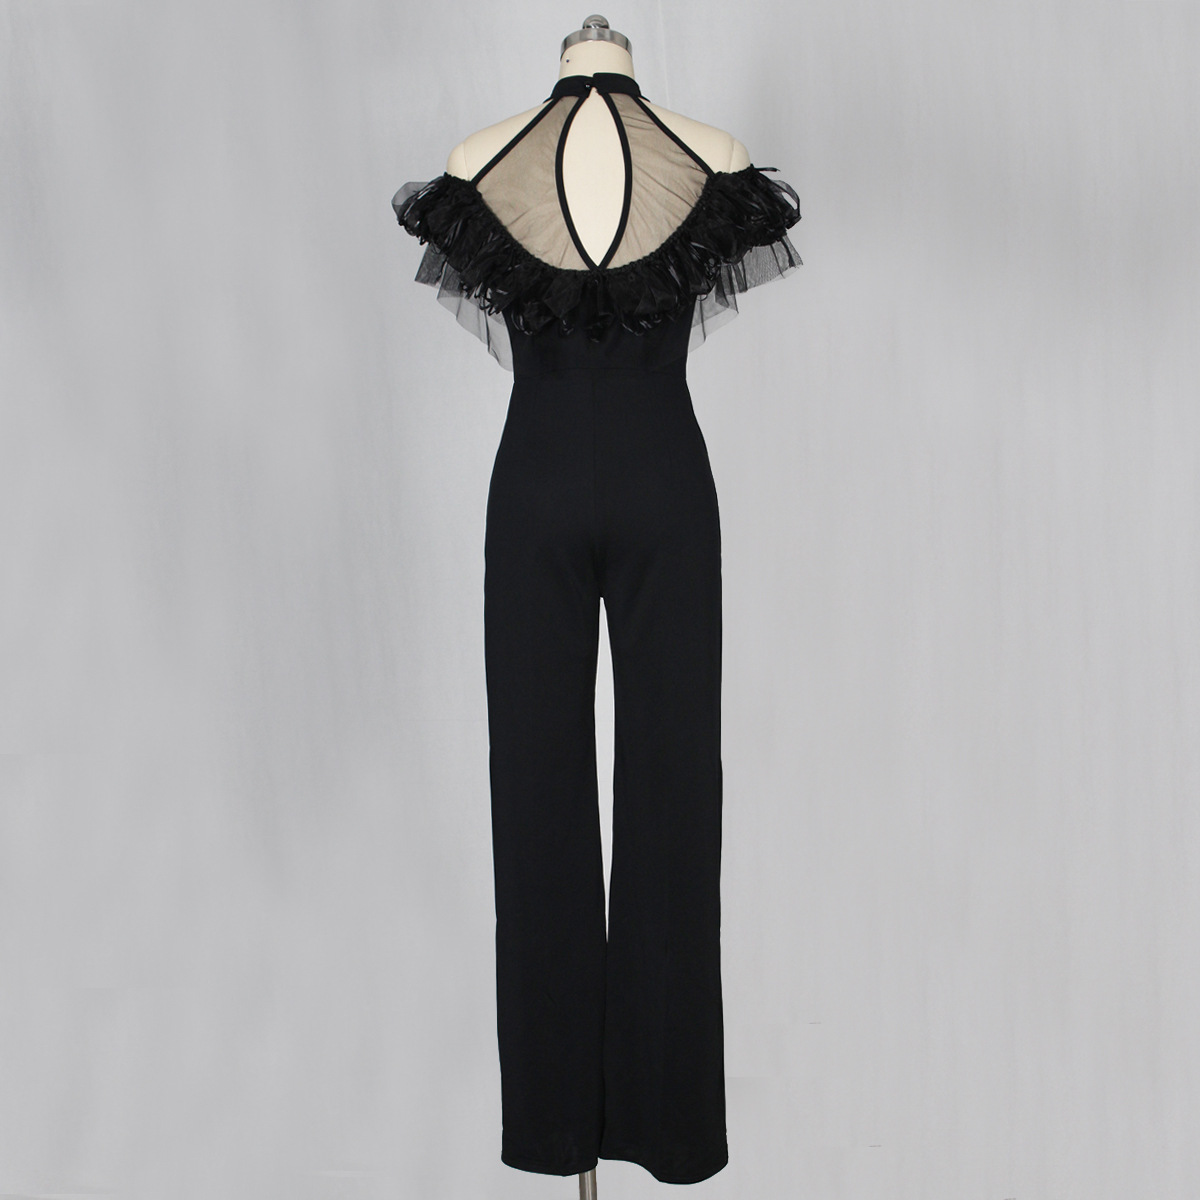 IMYSEN Summer Autumn Fashion Lace Mesh Jumpsuit Halter Solid Black Women Romper Paige One Piece Sexy Rompers New Arrival